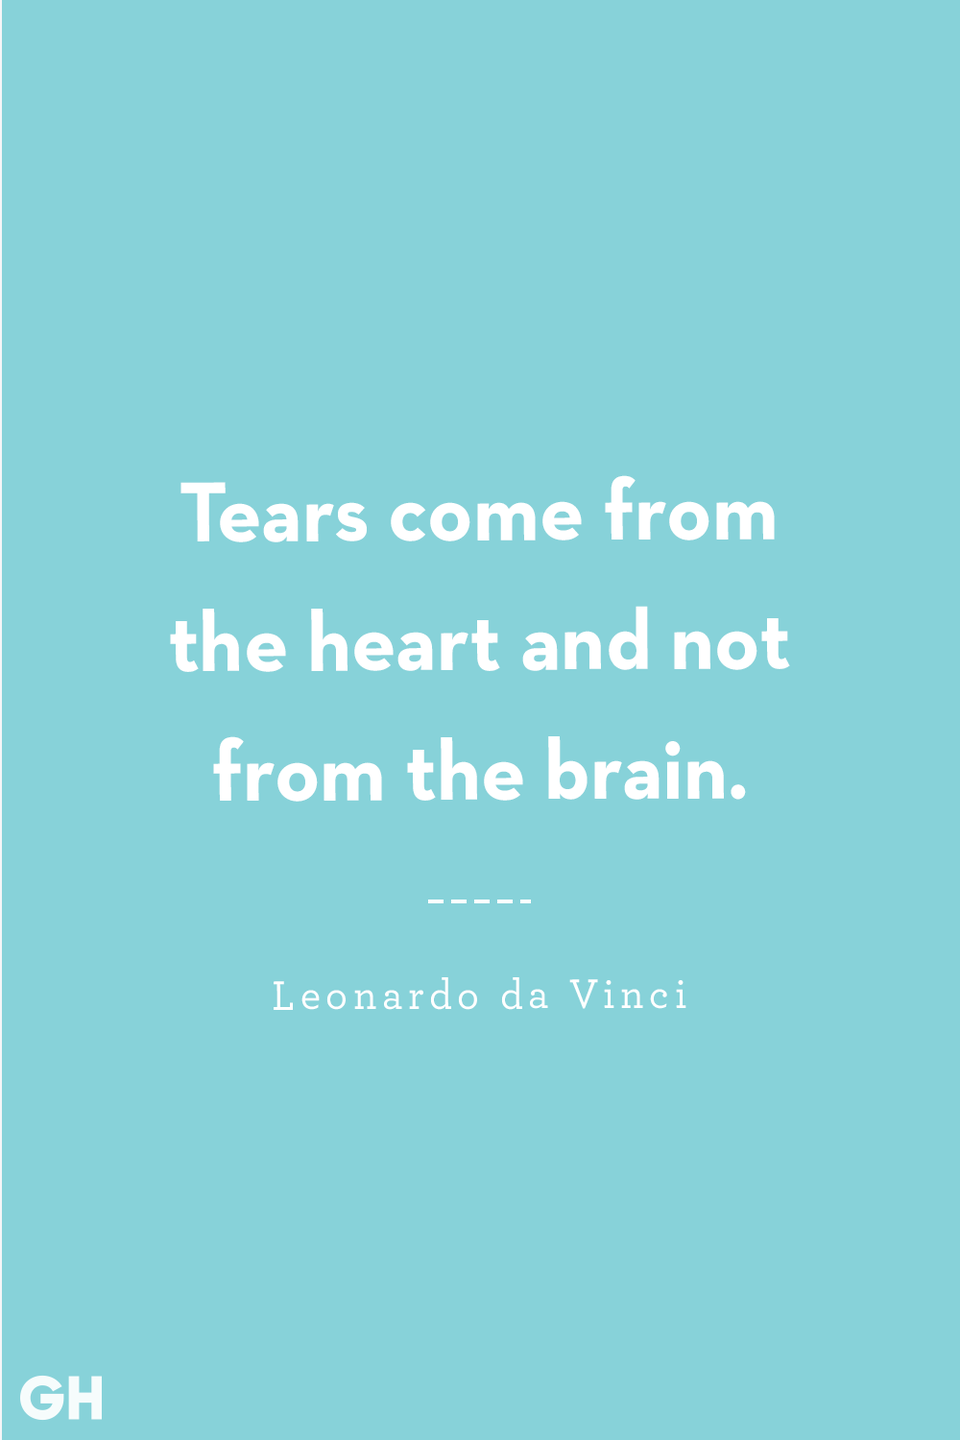 <p>Tears come from the heart and not from the brain.</p>